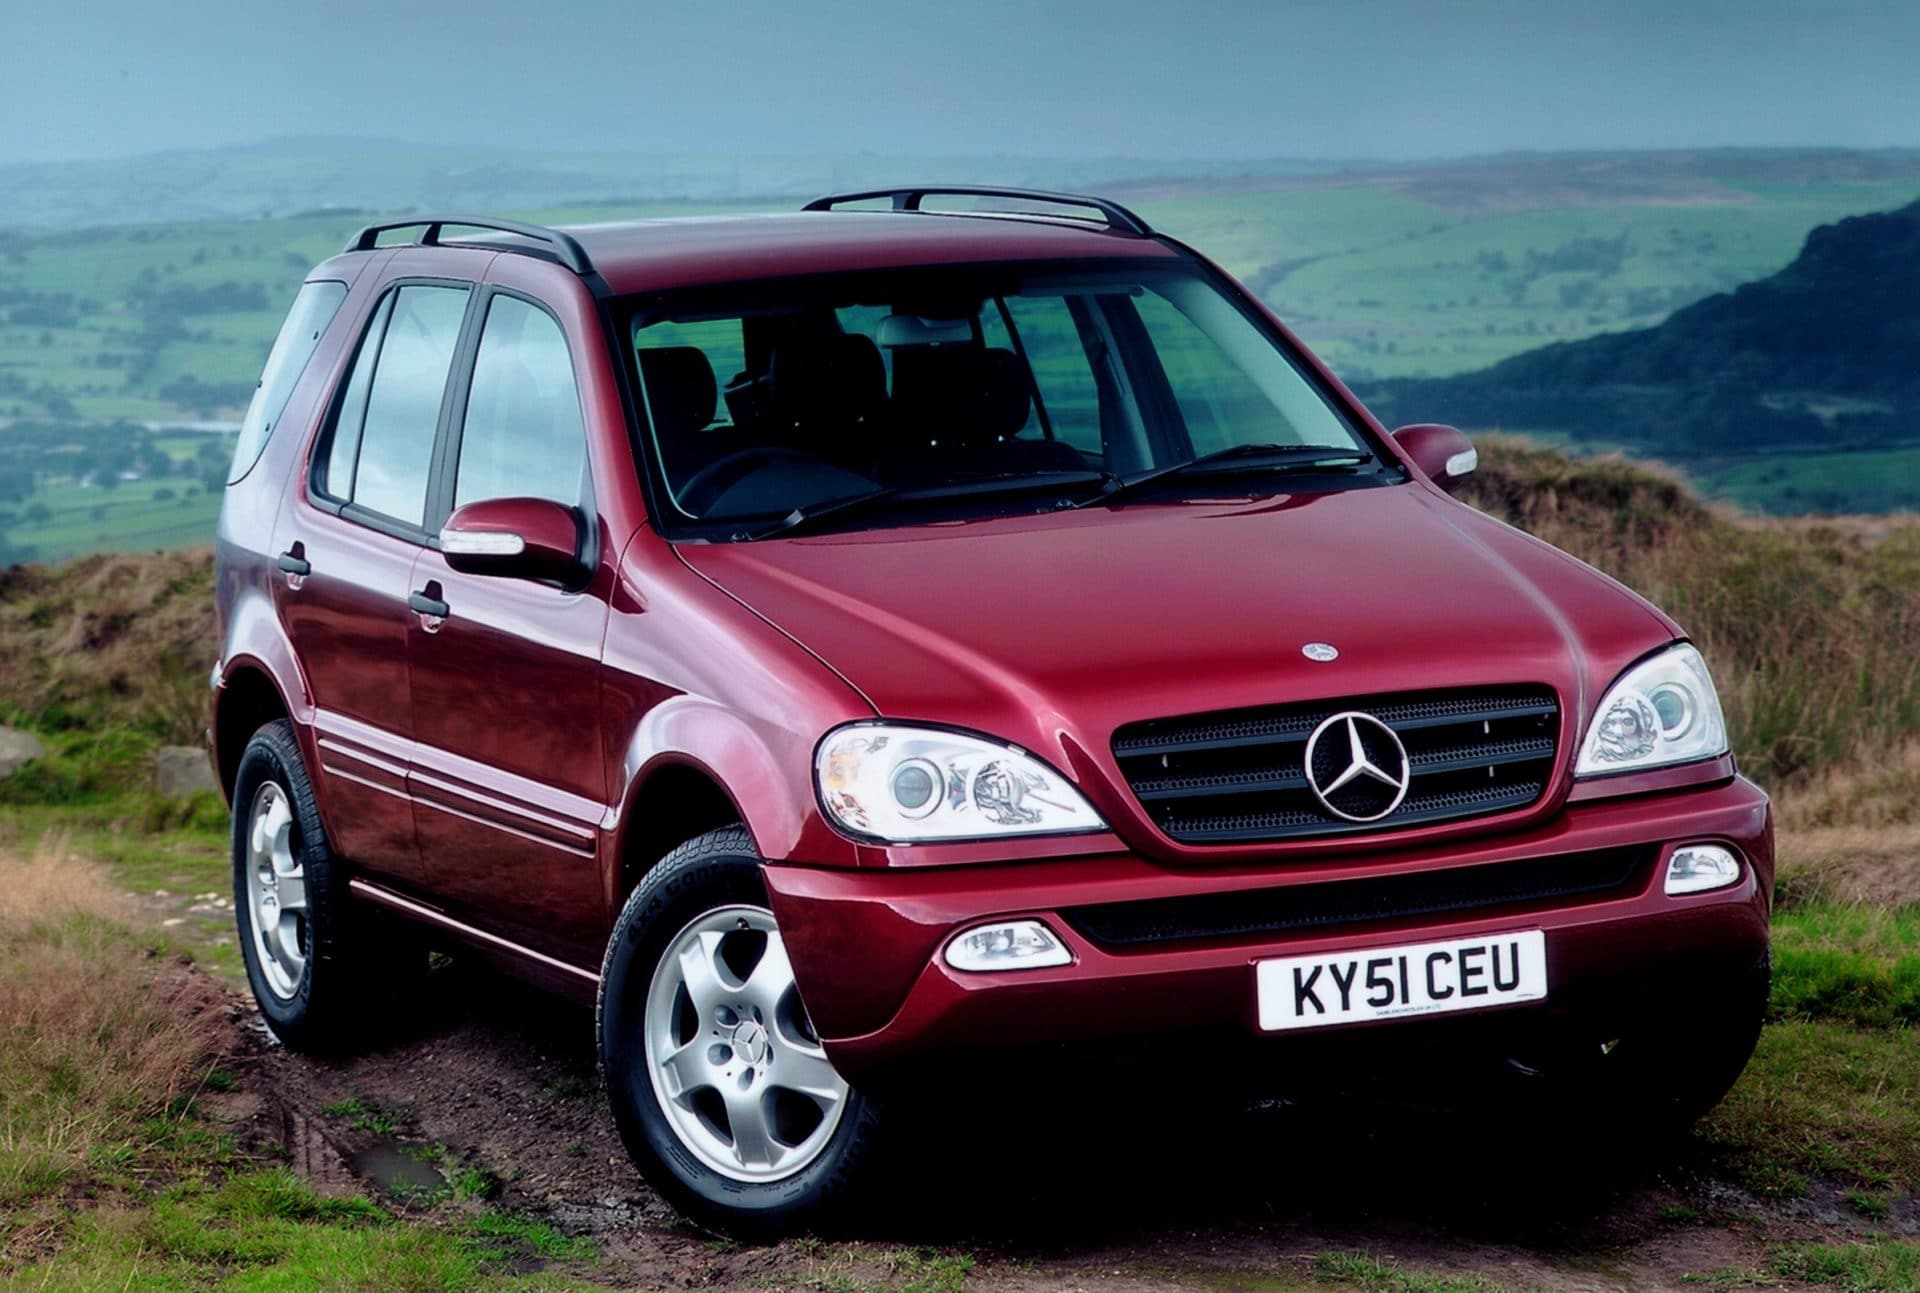 Mercedes-Benz, Mercedes, ML, Mercedes-Benz ML, Mercedes ML, 4x4, X5, Range Rover, off-road. motoring, automotive, car, cars, classic car, retro car, ebay, ebay motors, autotrader, adrian flux, not2grand, www.not2grand.co.uk, featured, ML buying guide